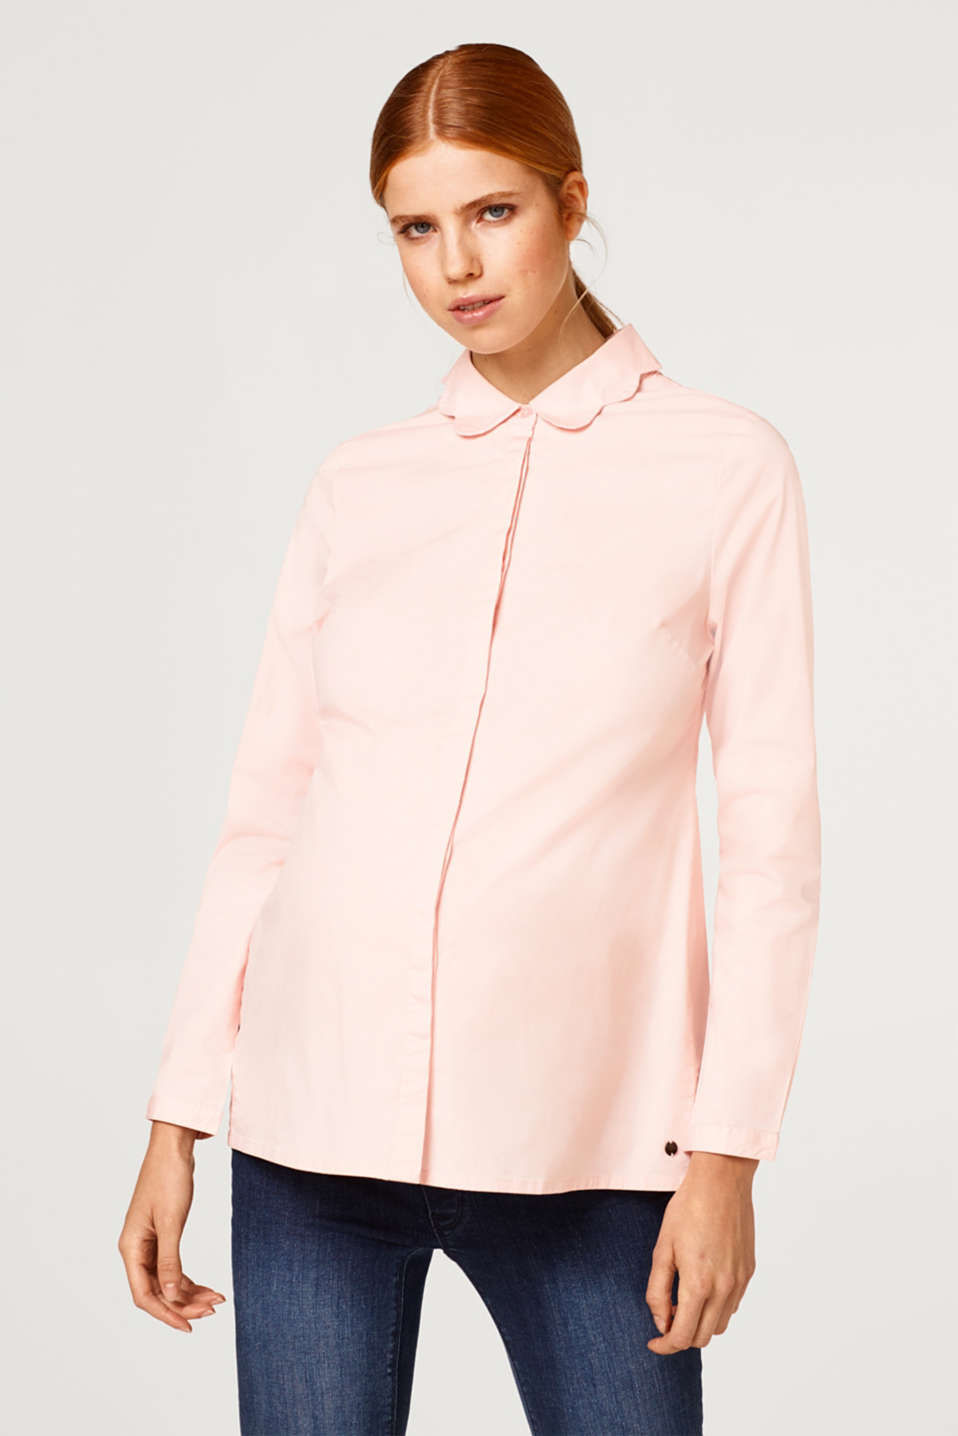 Esprit - Blouse with a turn-down collar in stretch cotton